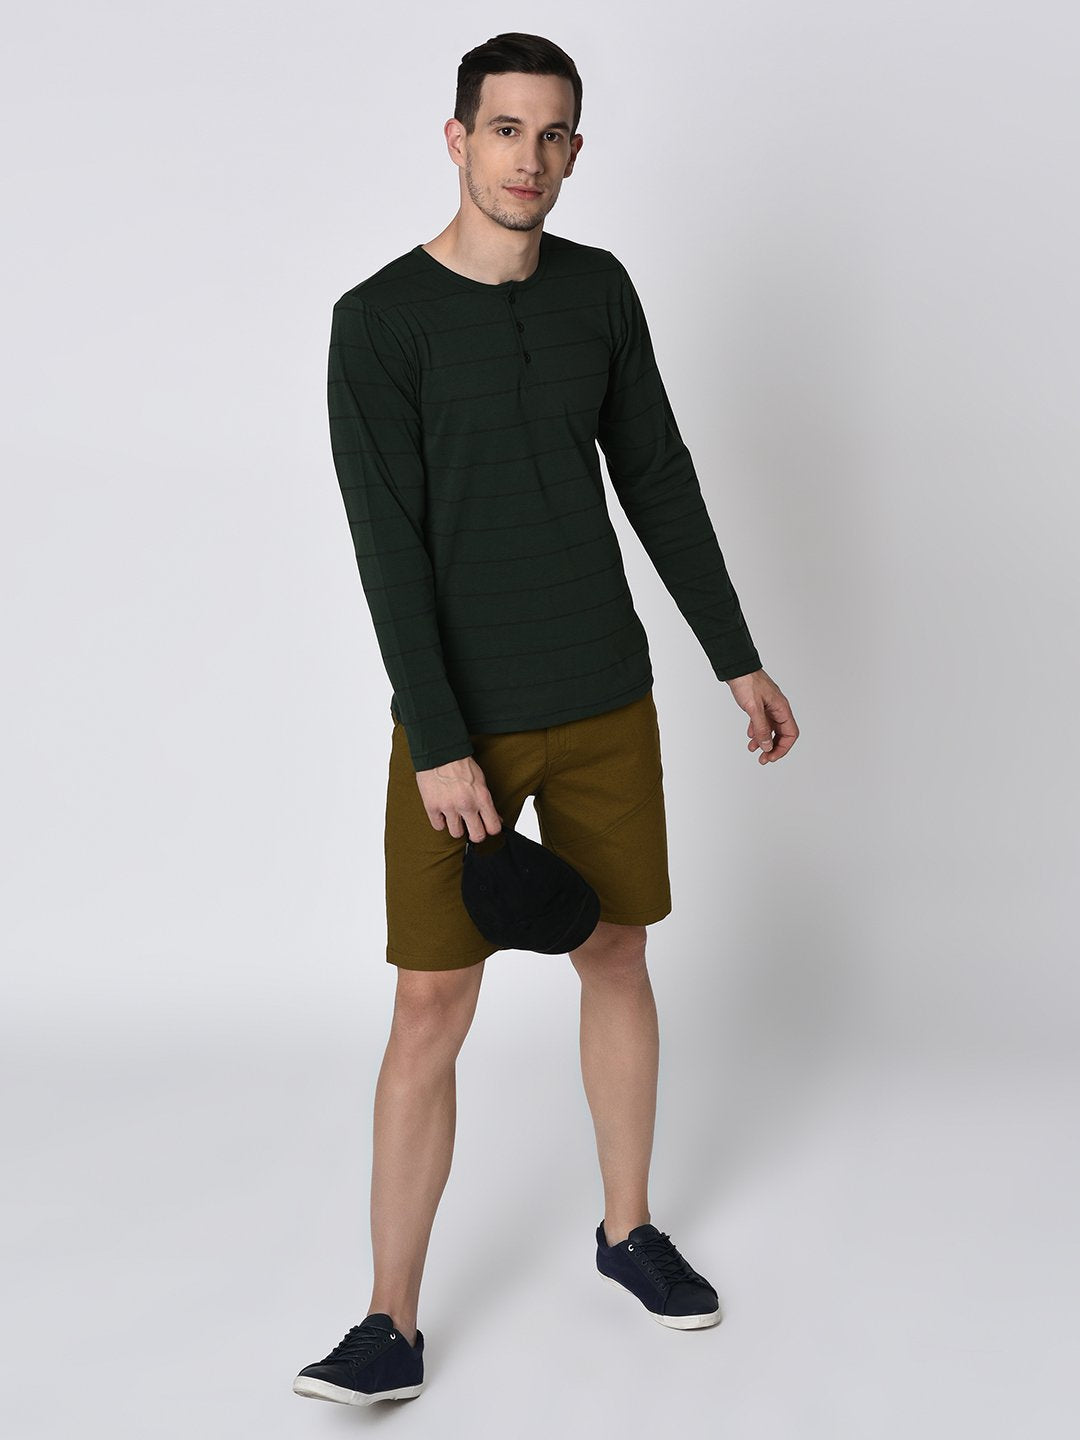 0b5ea0d2d0784 Rigo Olive Green Cut   Sew Detailing Woven Shorts for Men – rigoindia